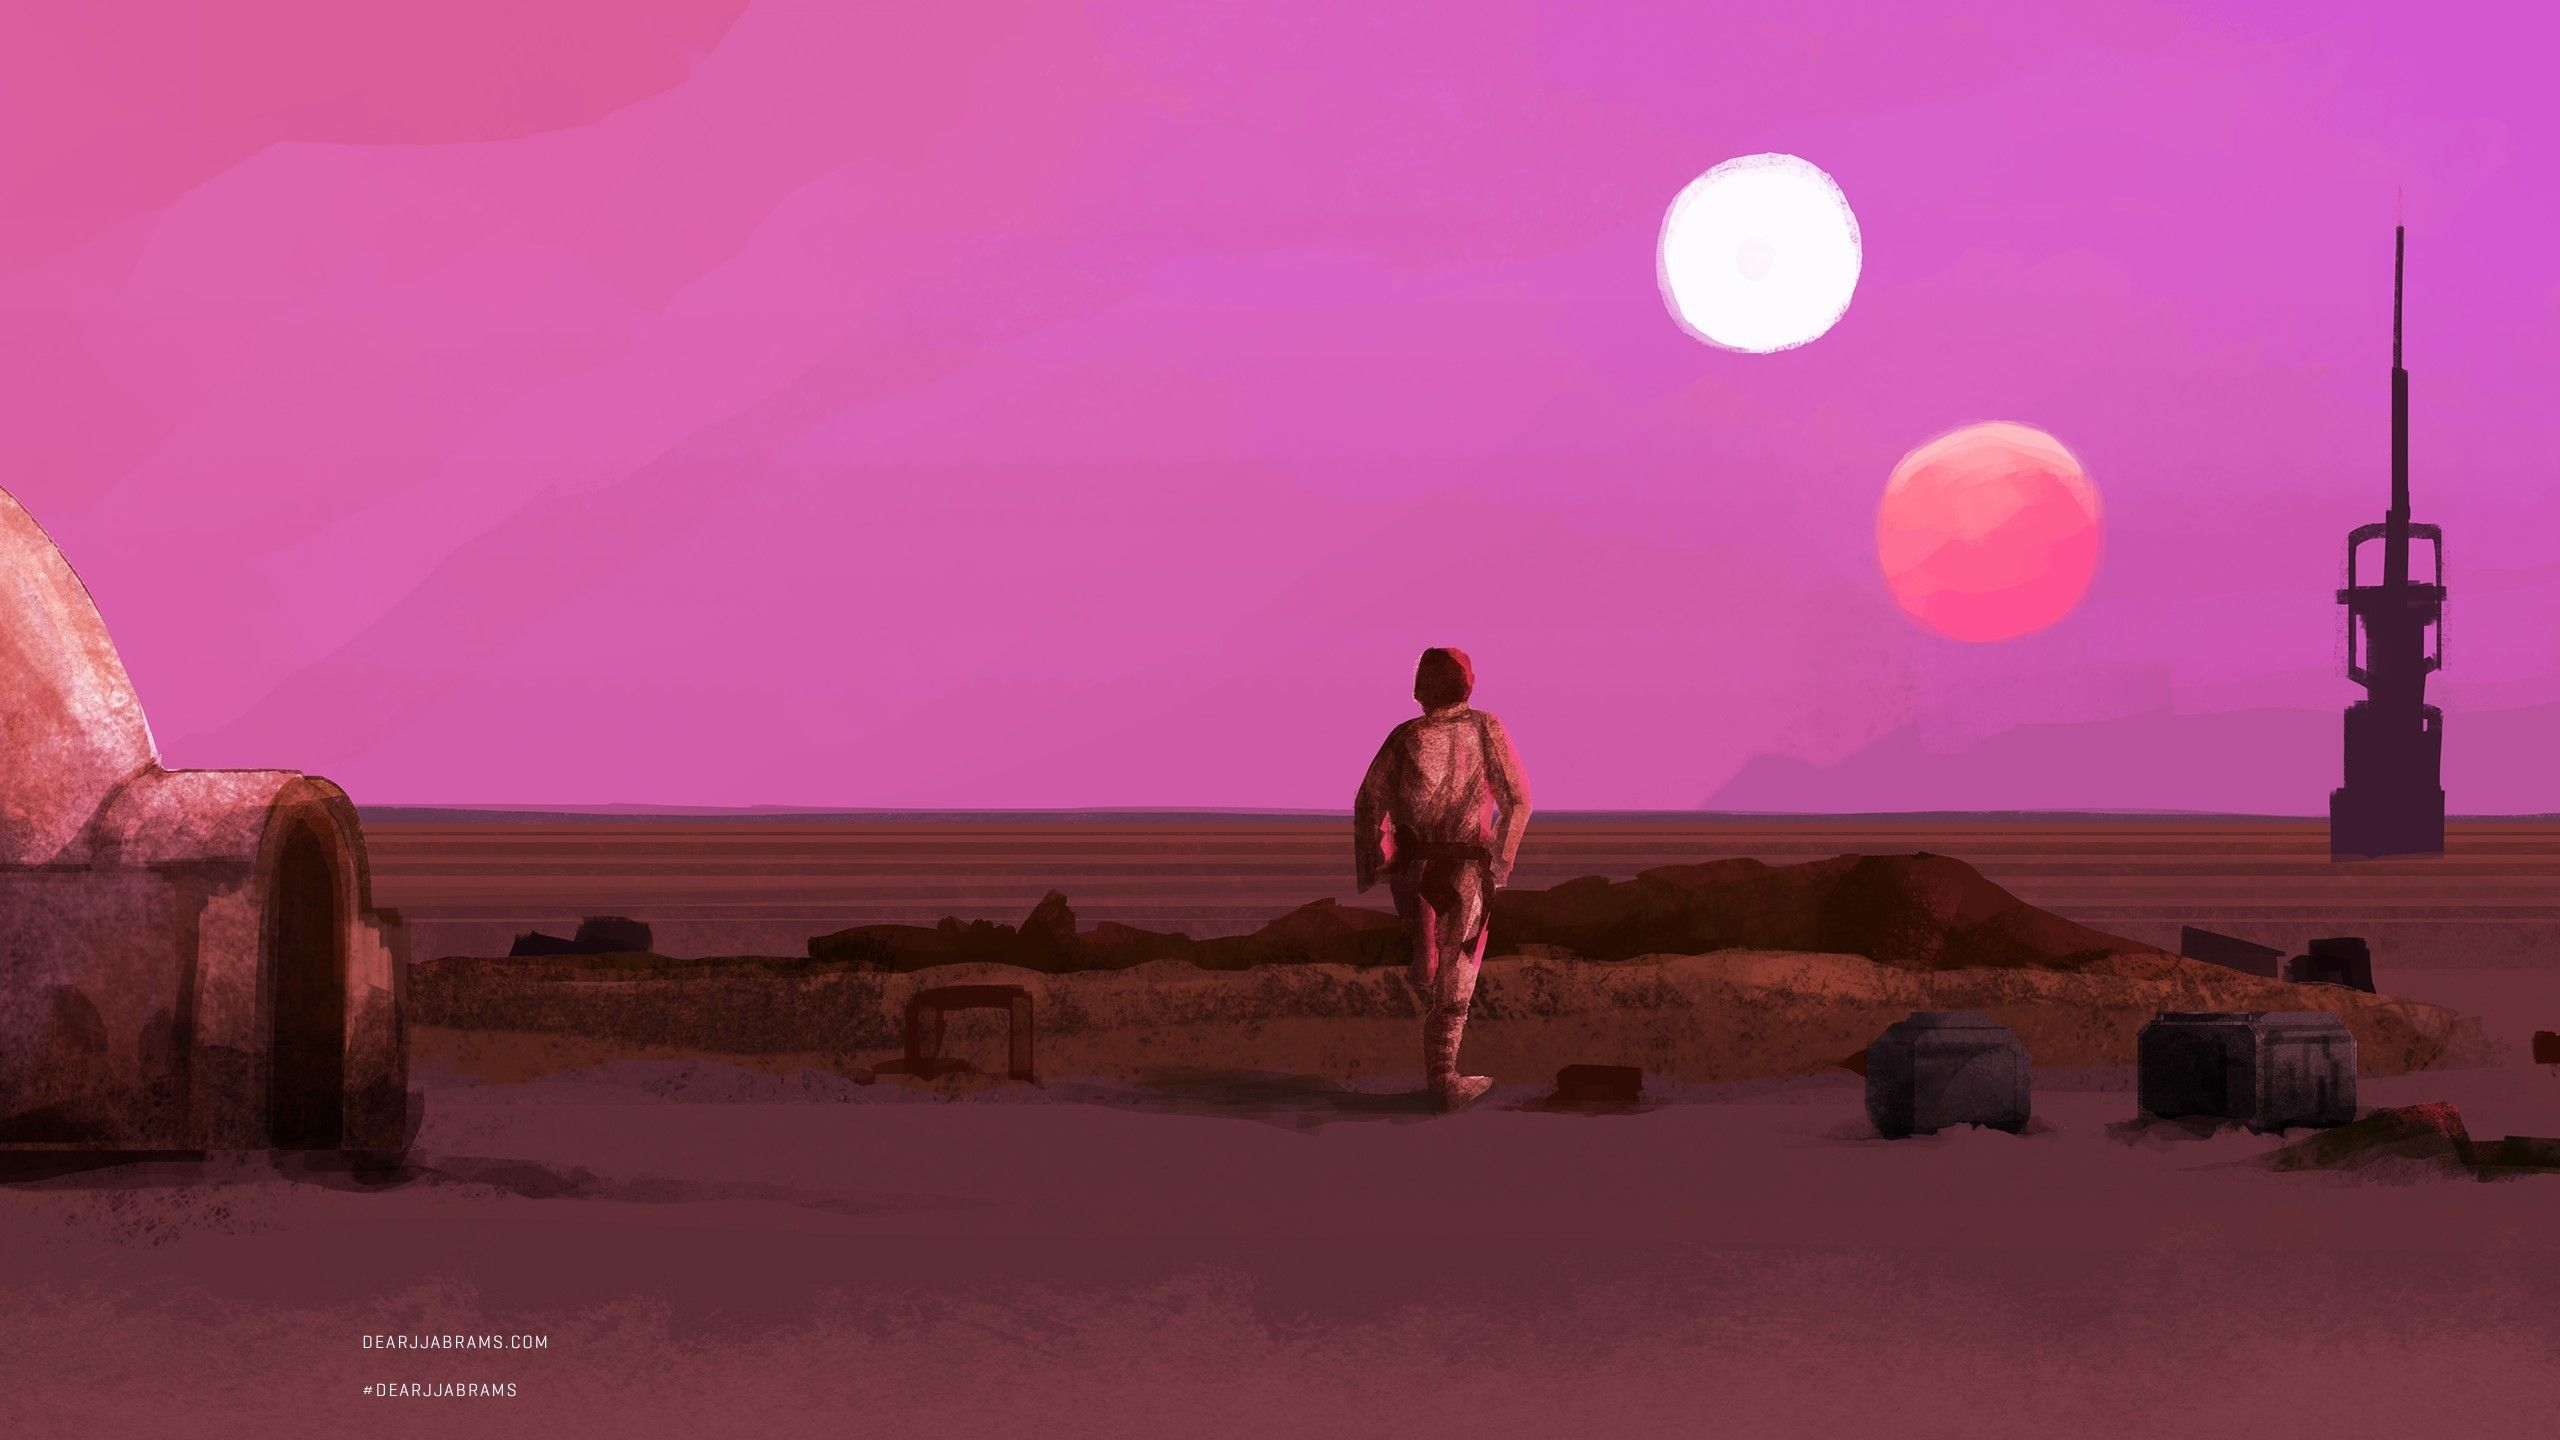 Star Wars Aesthetic Images Wallpapers Wallpaper Cave